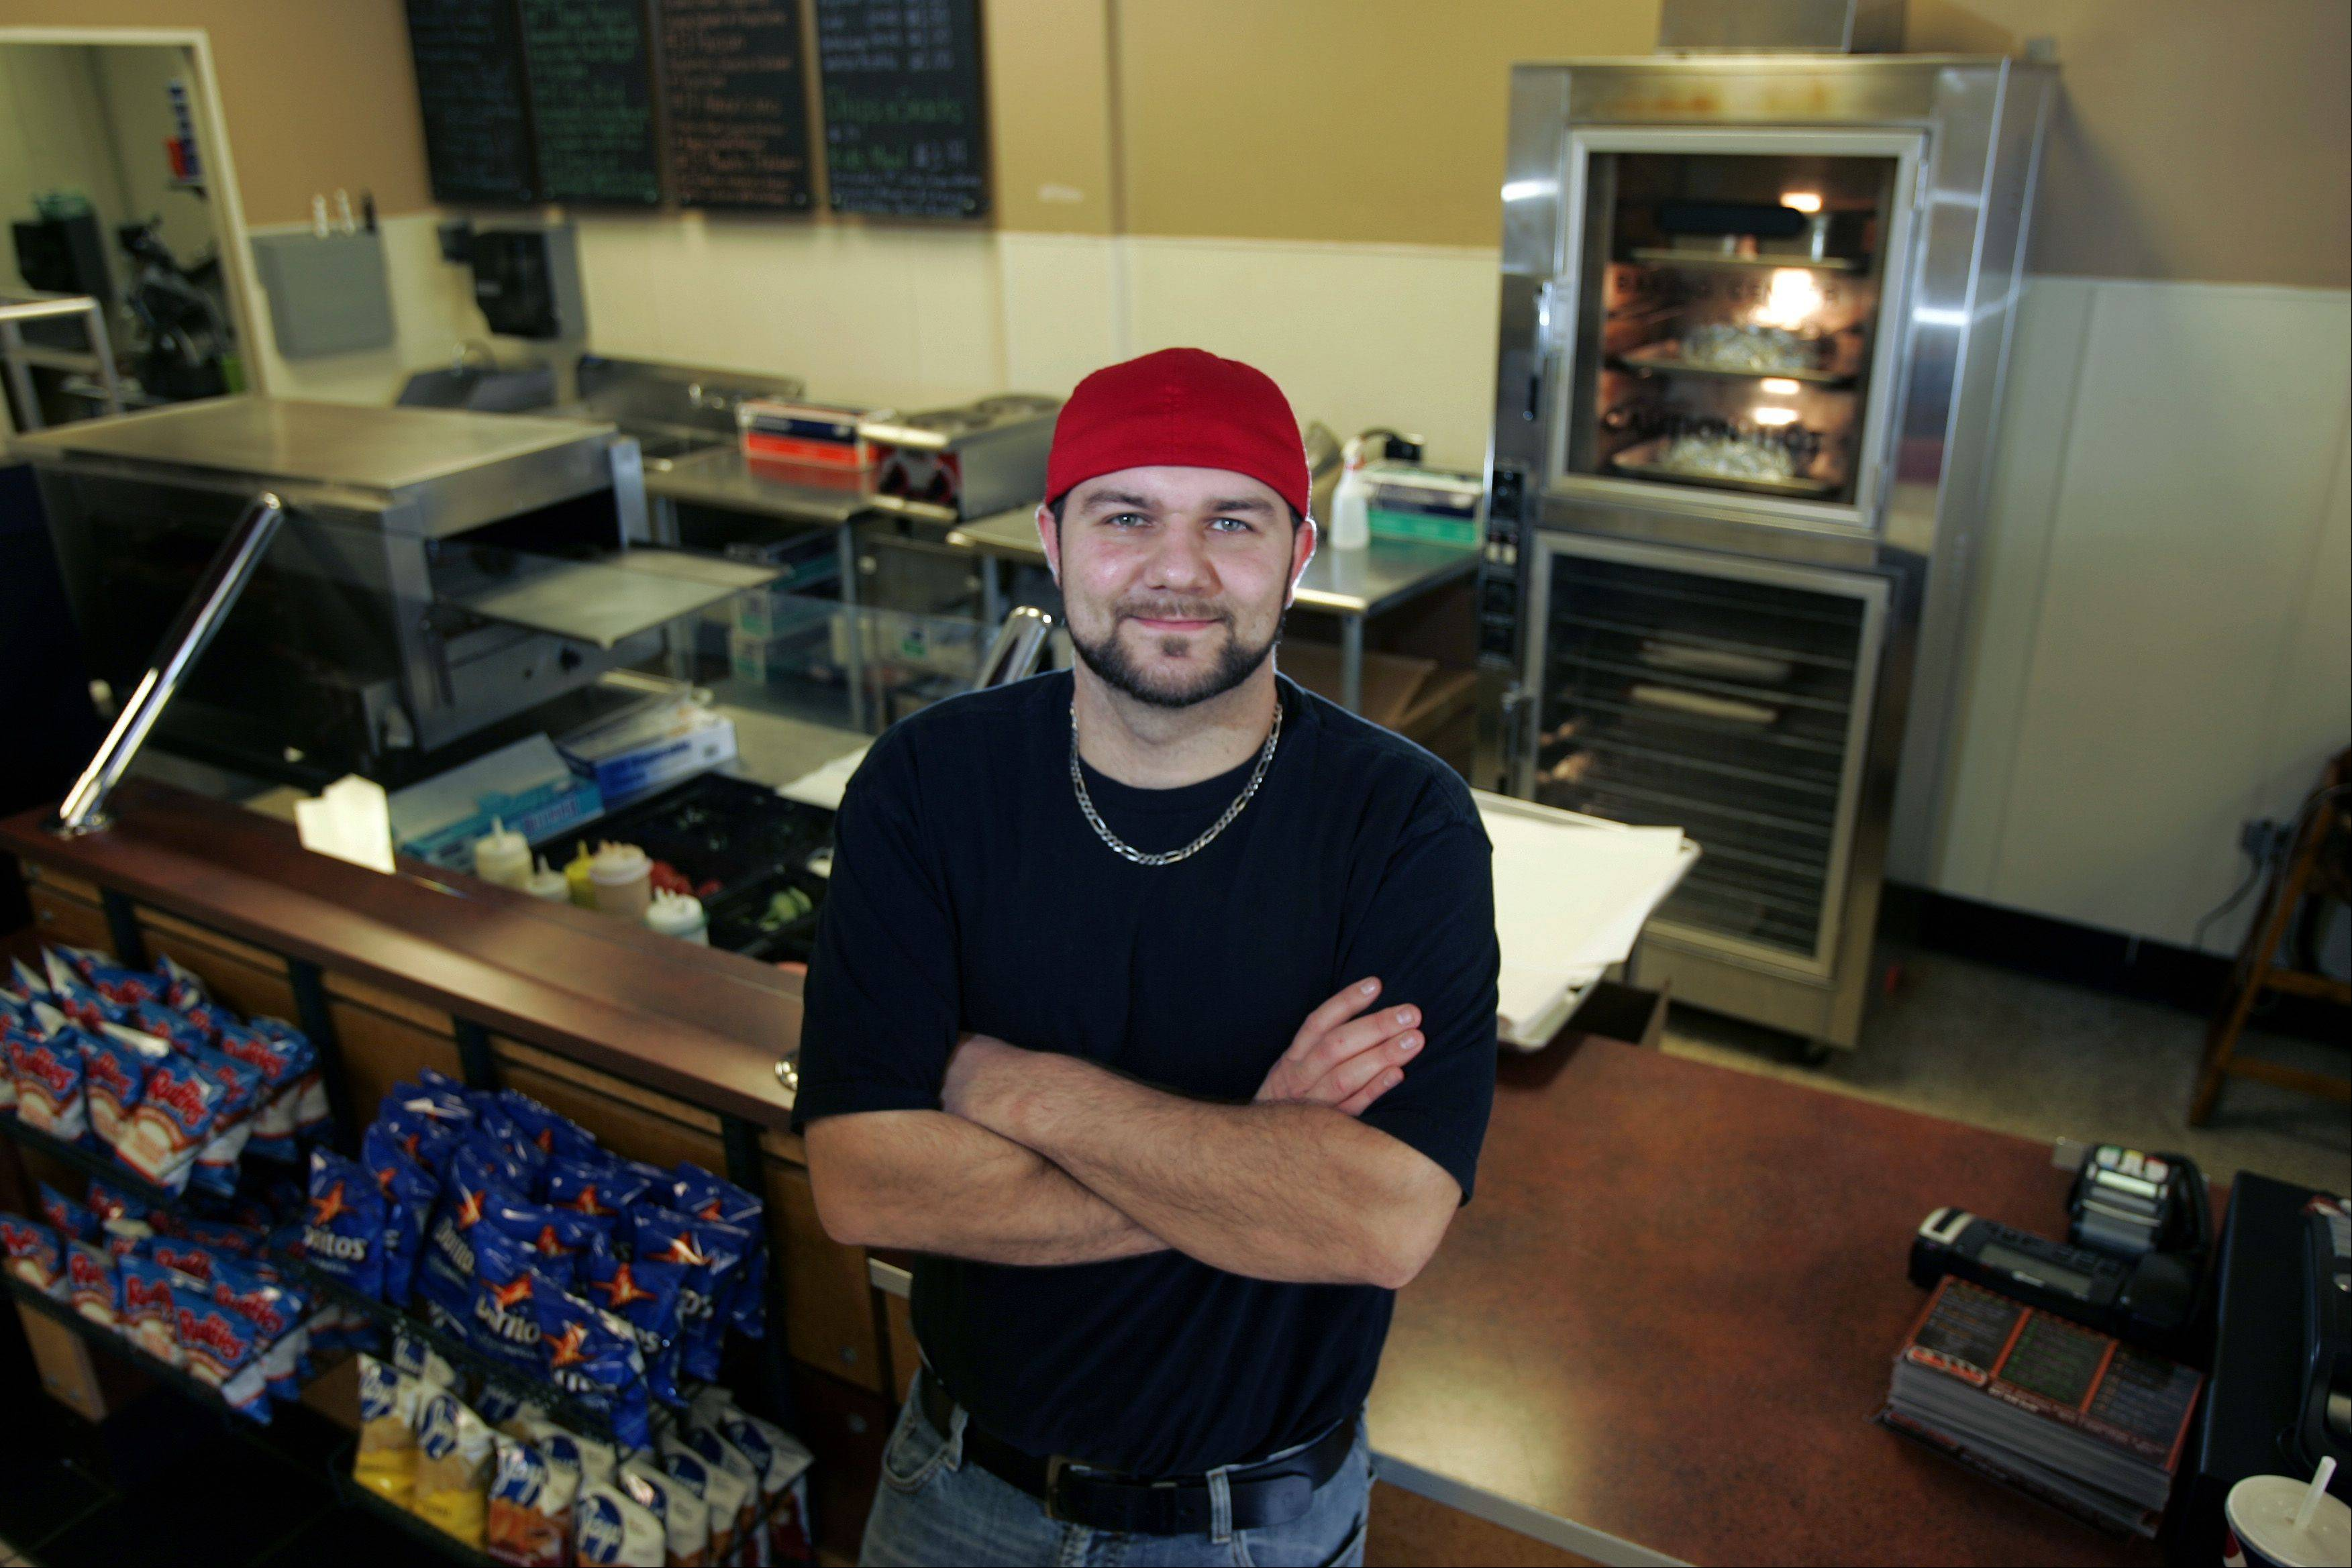 Dominick Pulli opened his sandwich shop, Bubs Subs, on Randall Road in Algonquin last August, and he says business has been great ever since.